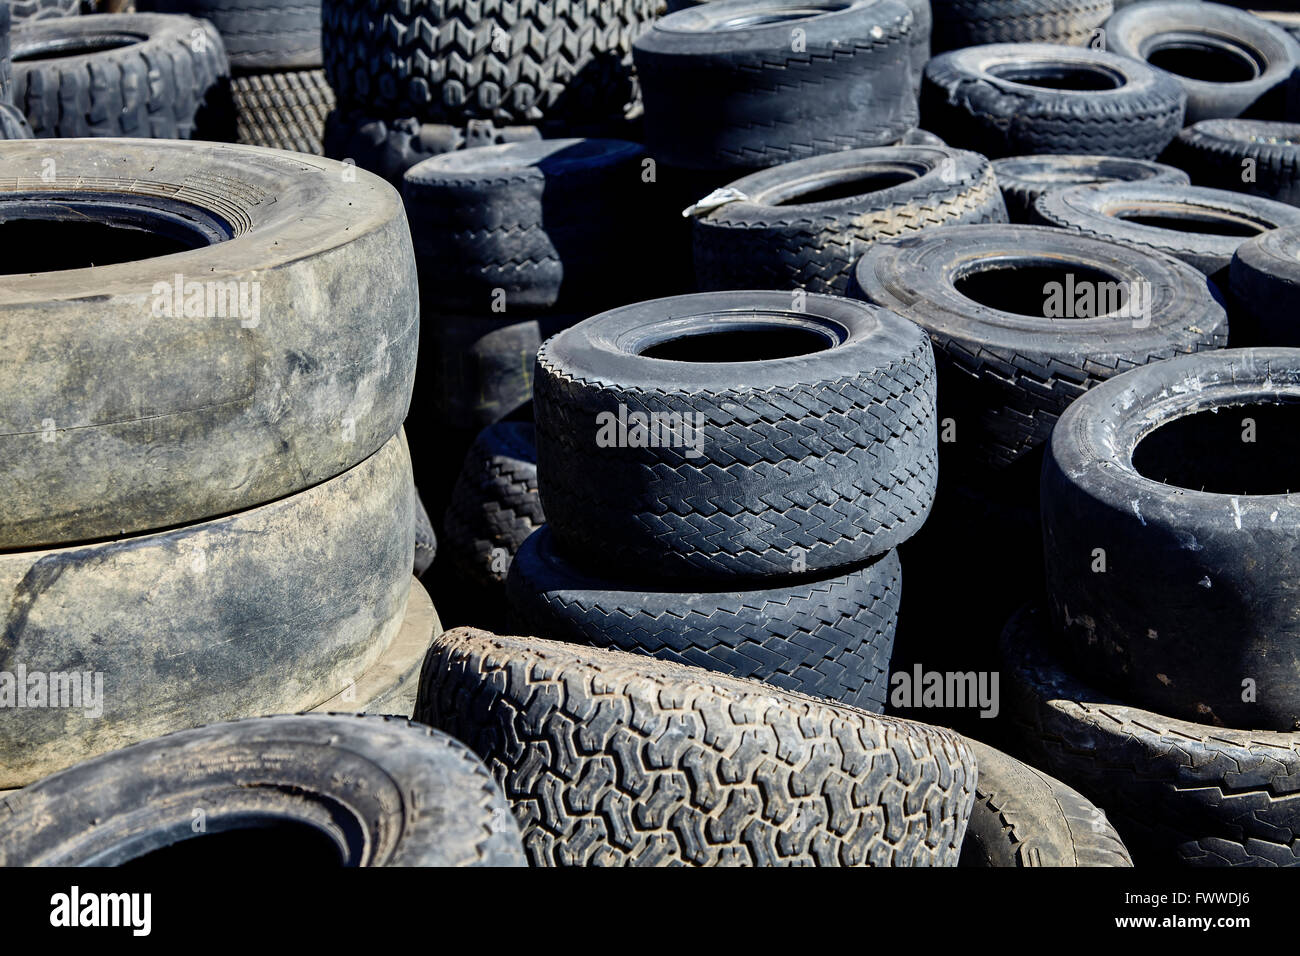 Tire Recycling Stock Photos & Tire Recycling Stock Images - Alamy